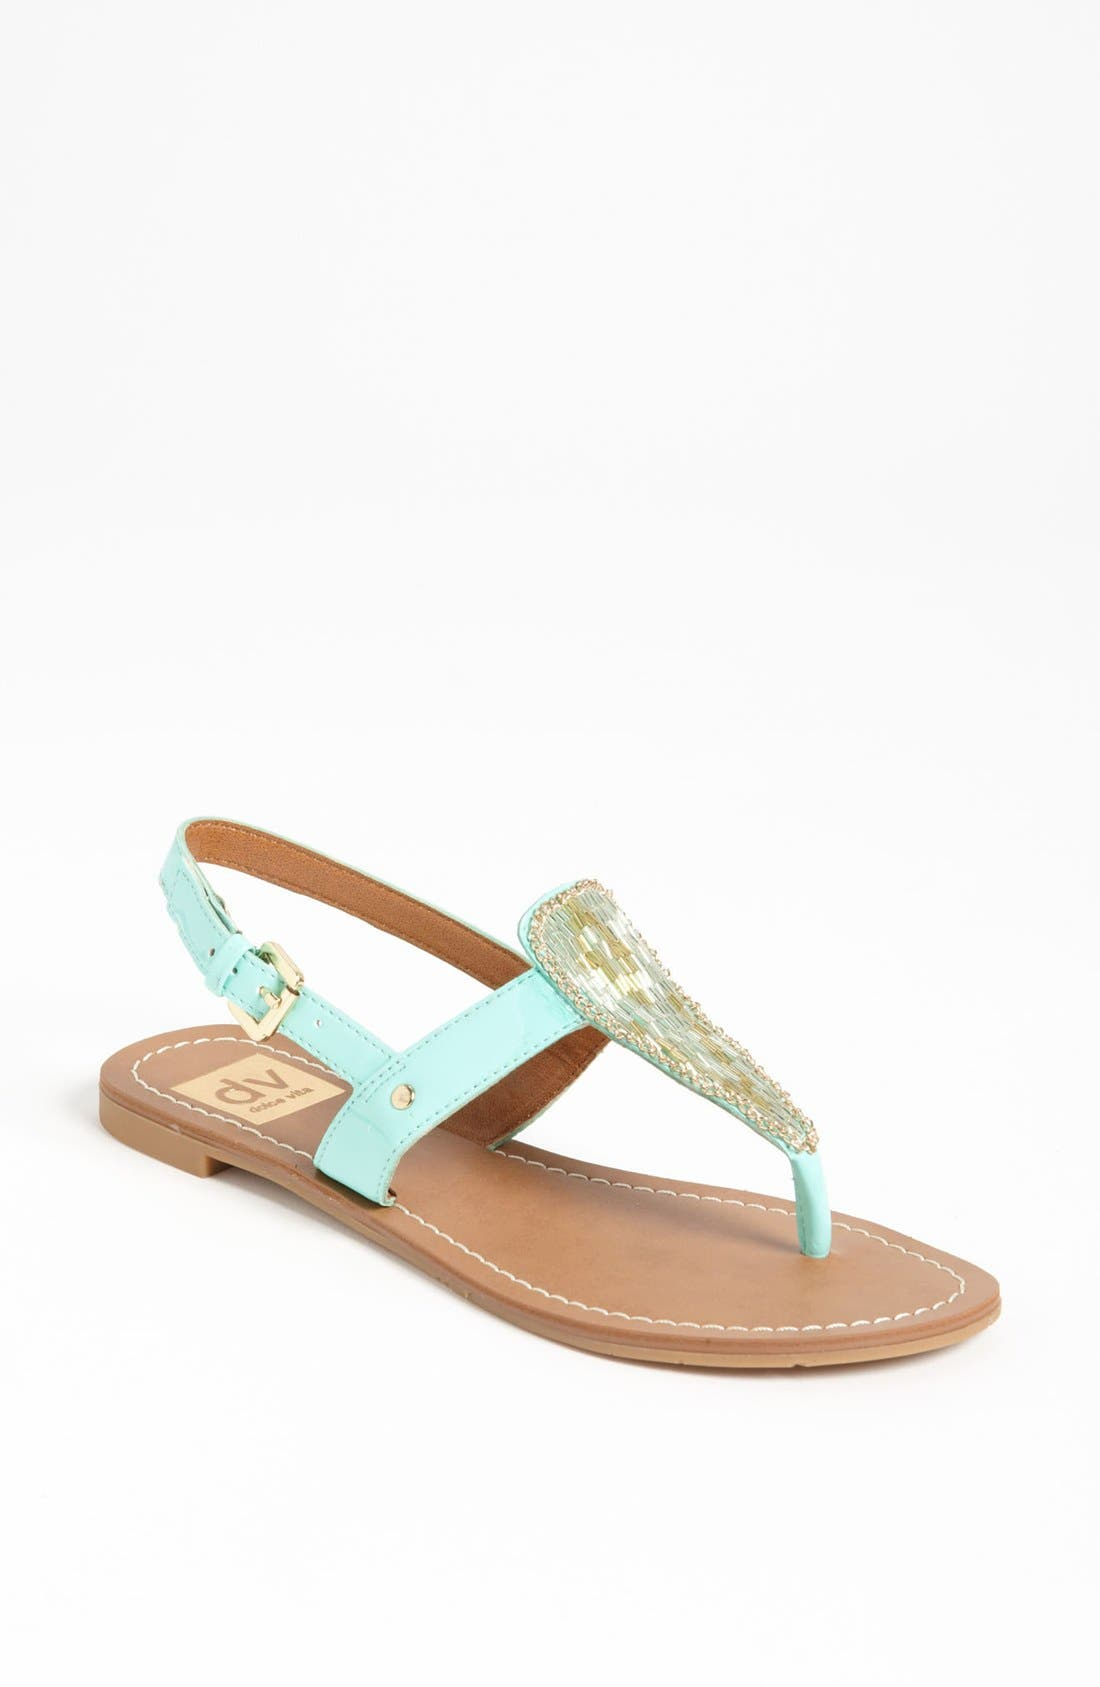 Alternate Image 1 Selected - DV by Dolce Vita 'Domino' Sandal